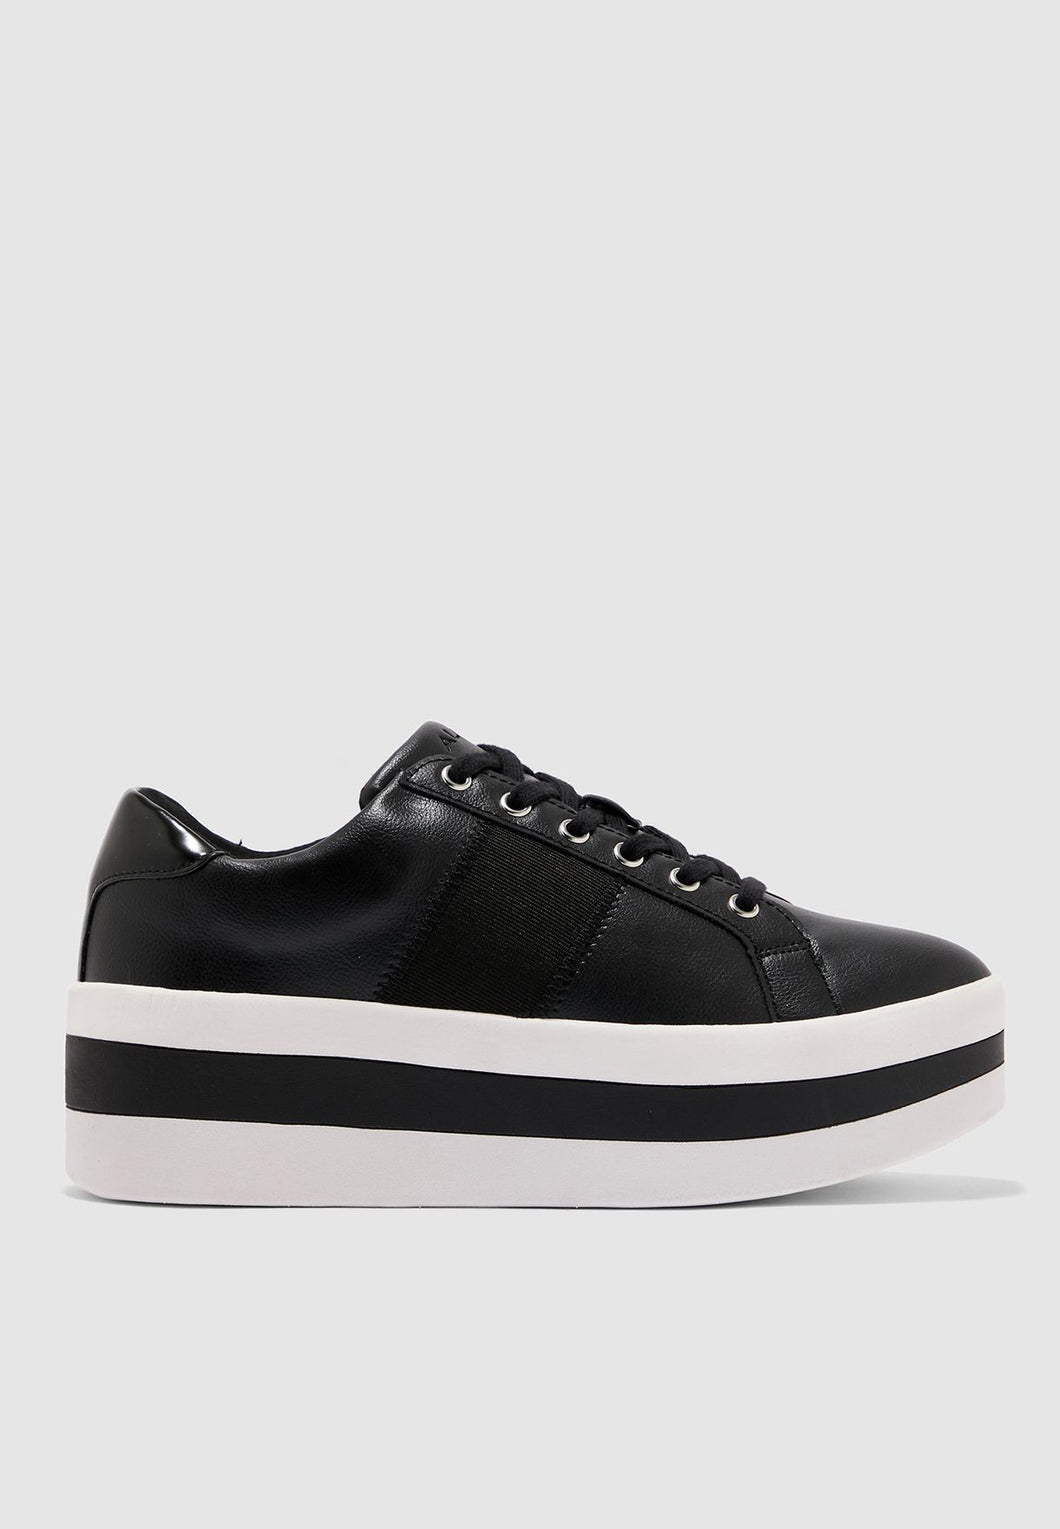 Sneakers Elriodia Black Synthetic